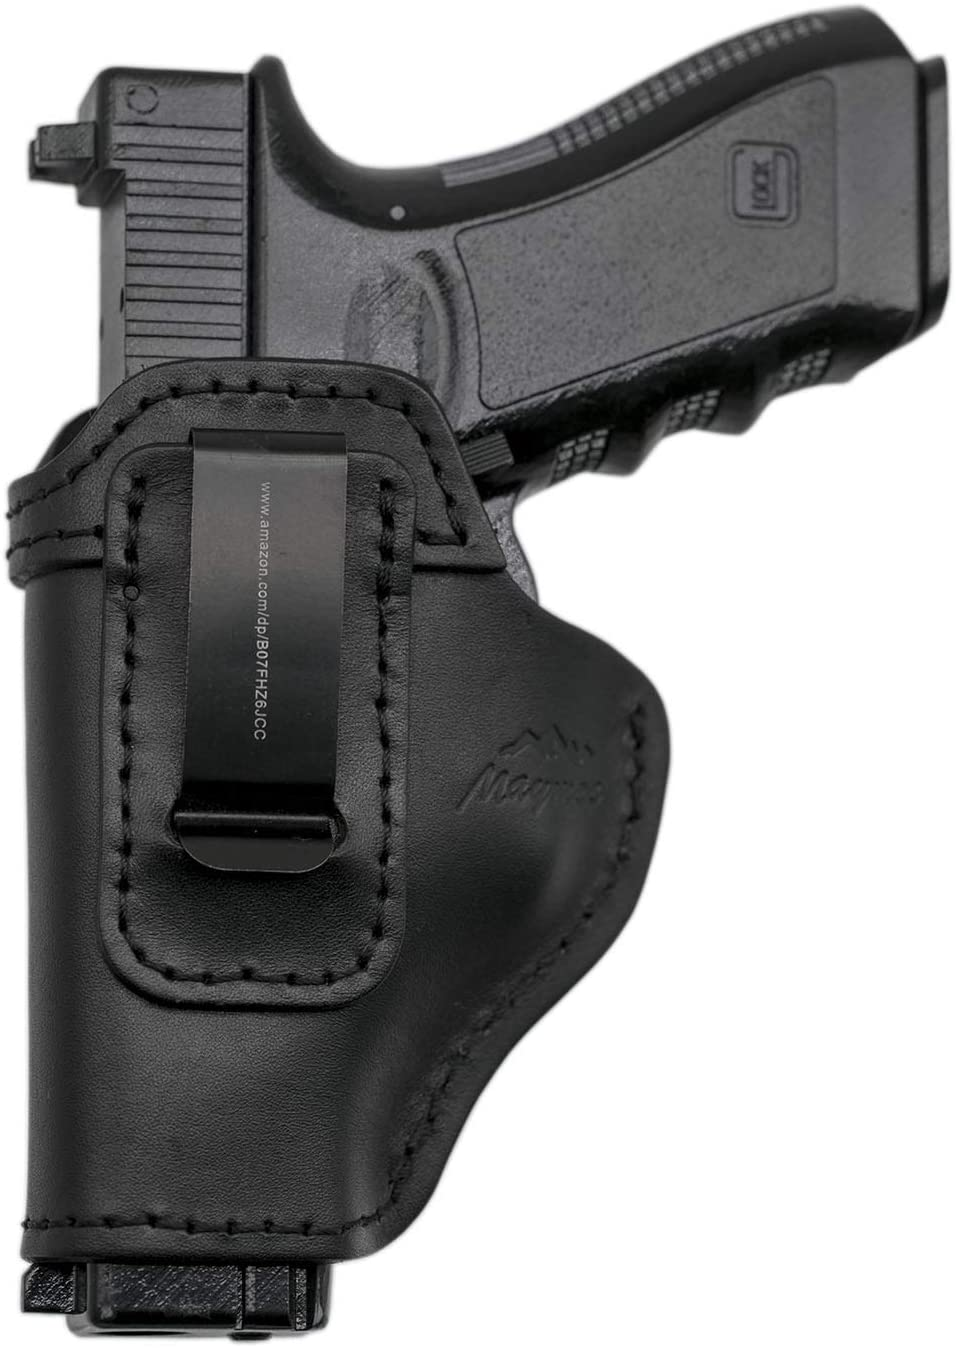 MAYMOC The Defender Funda de Cuero IWB para S&W M&P Shield - Glock 17-19 19 22 23 32 33 / Springfield XD & XDS/Plus Todas Las Pistolas de tamaño Similar